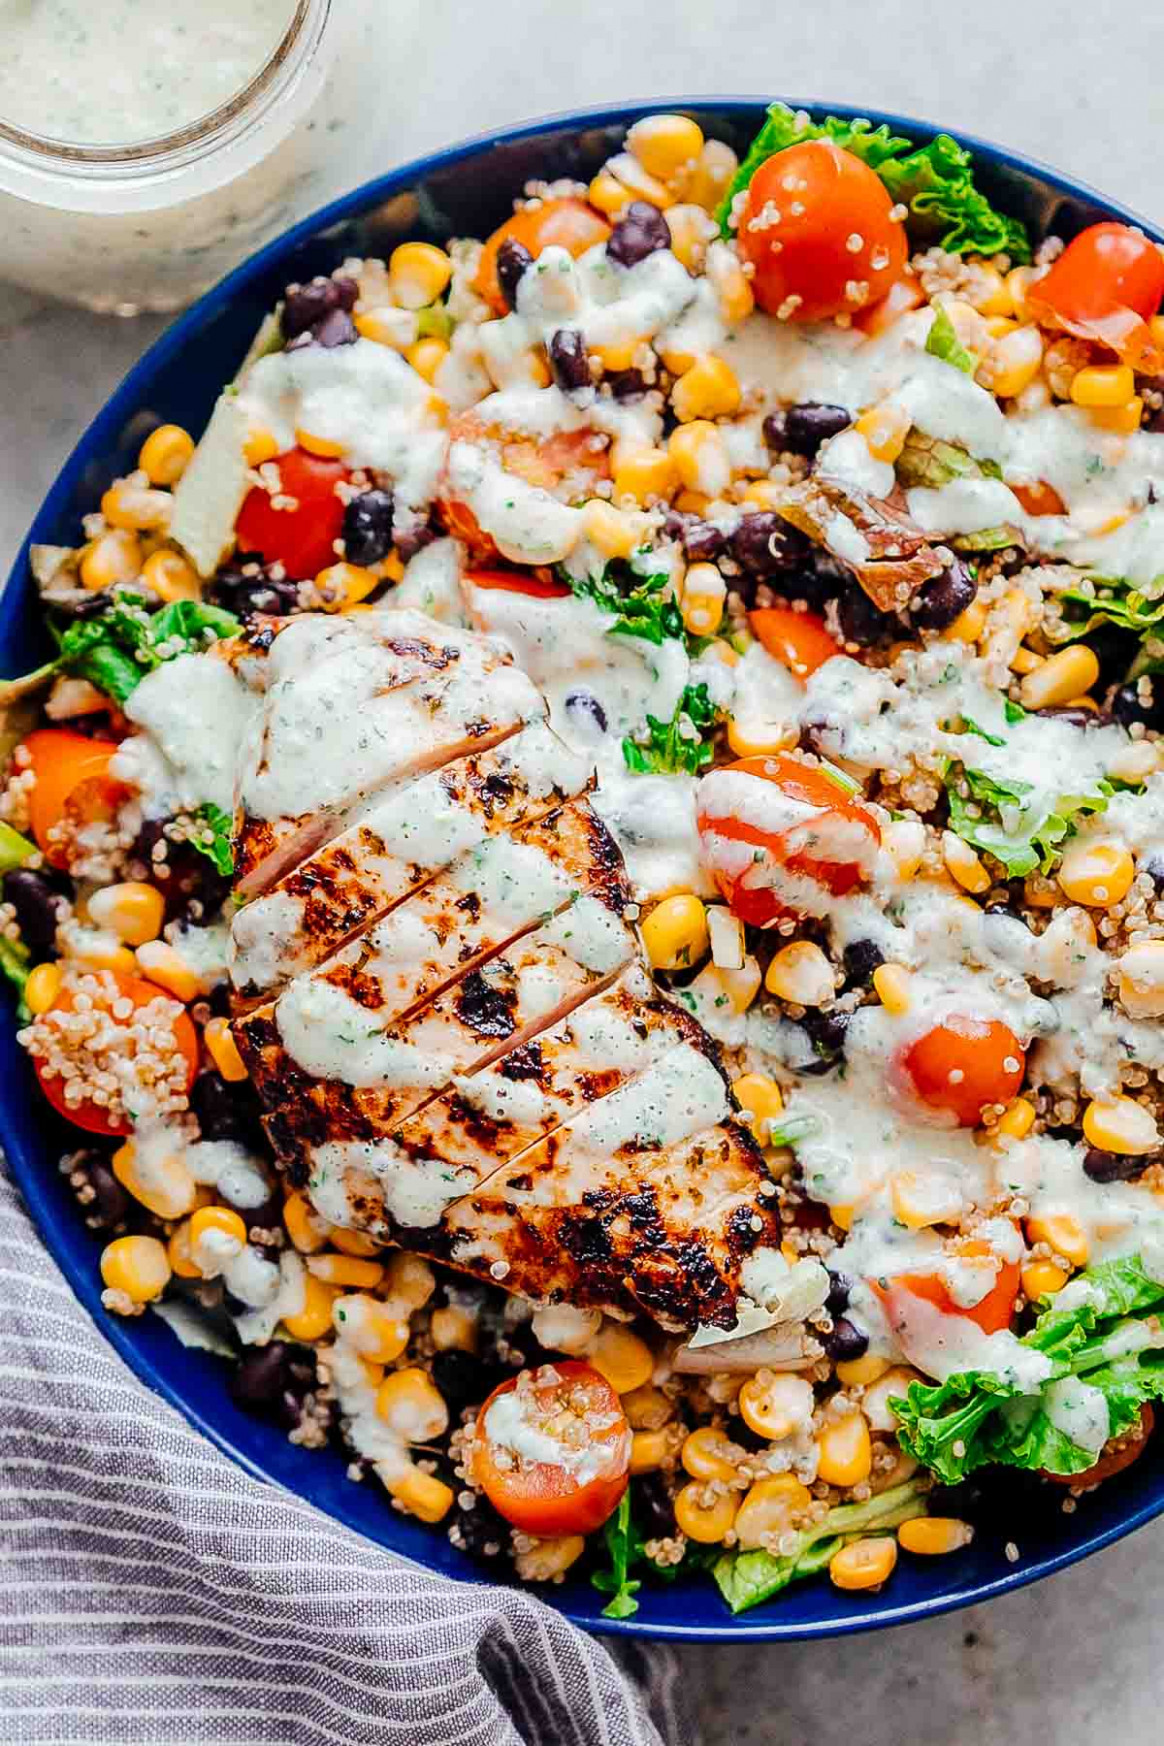 Southwest Chicken Quinoa Bean Salad - Hearty and Healthy!